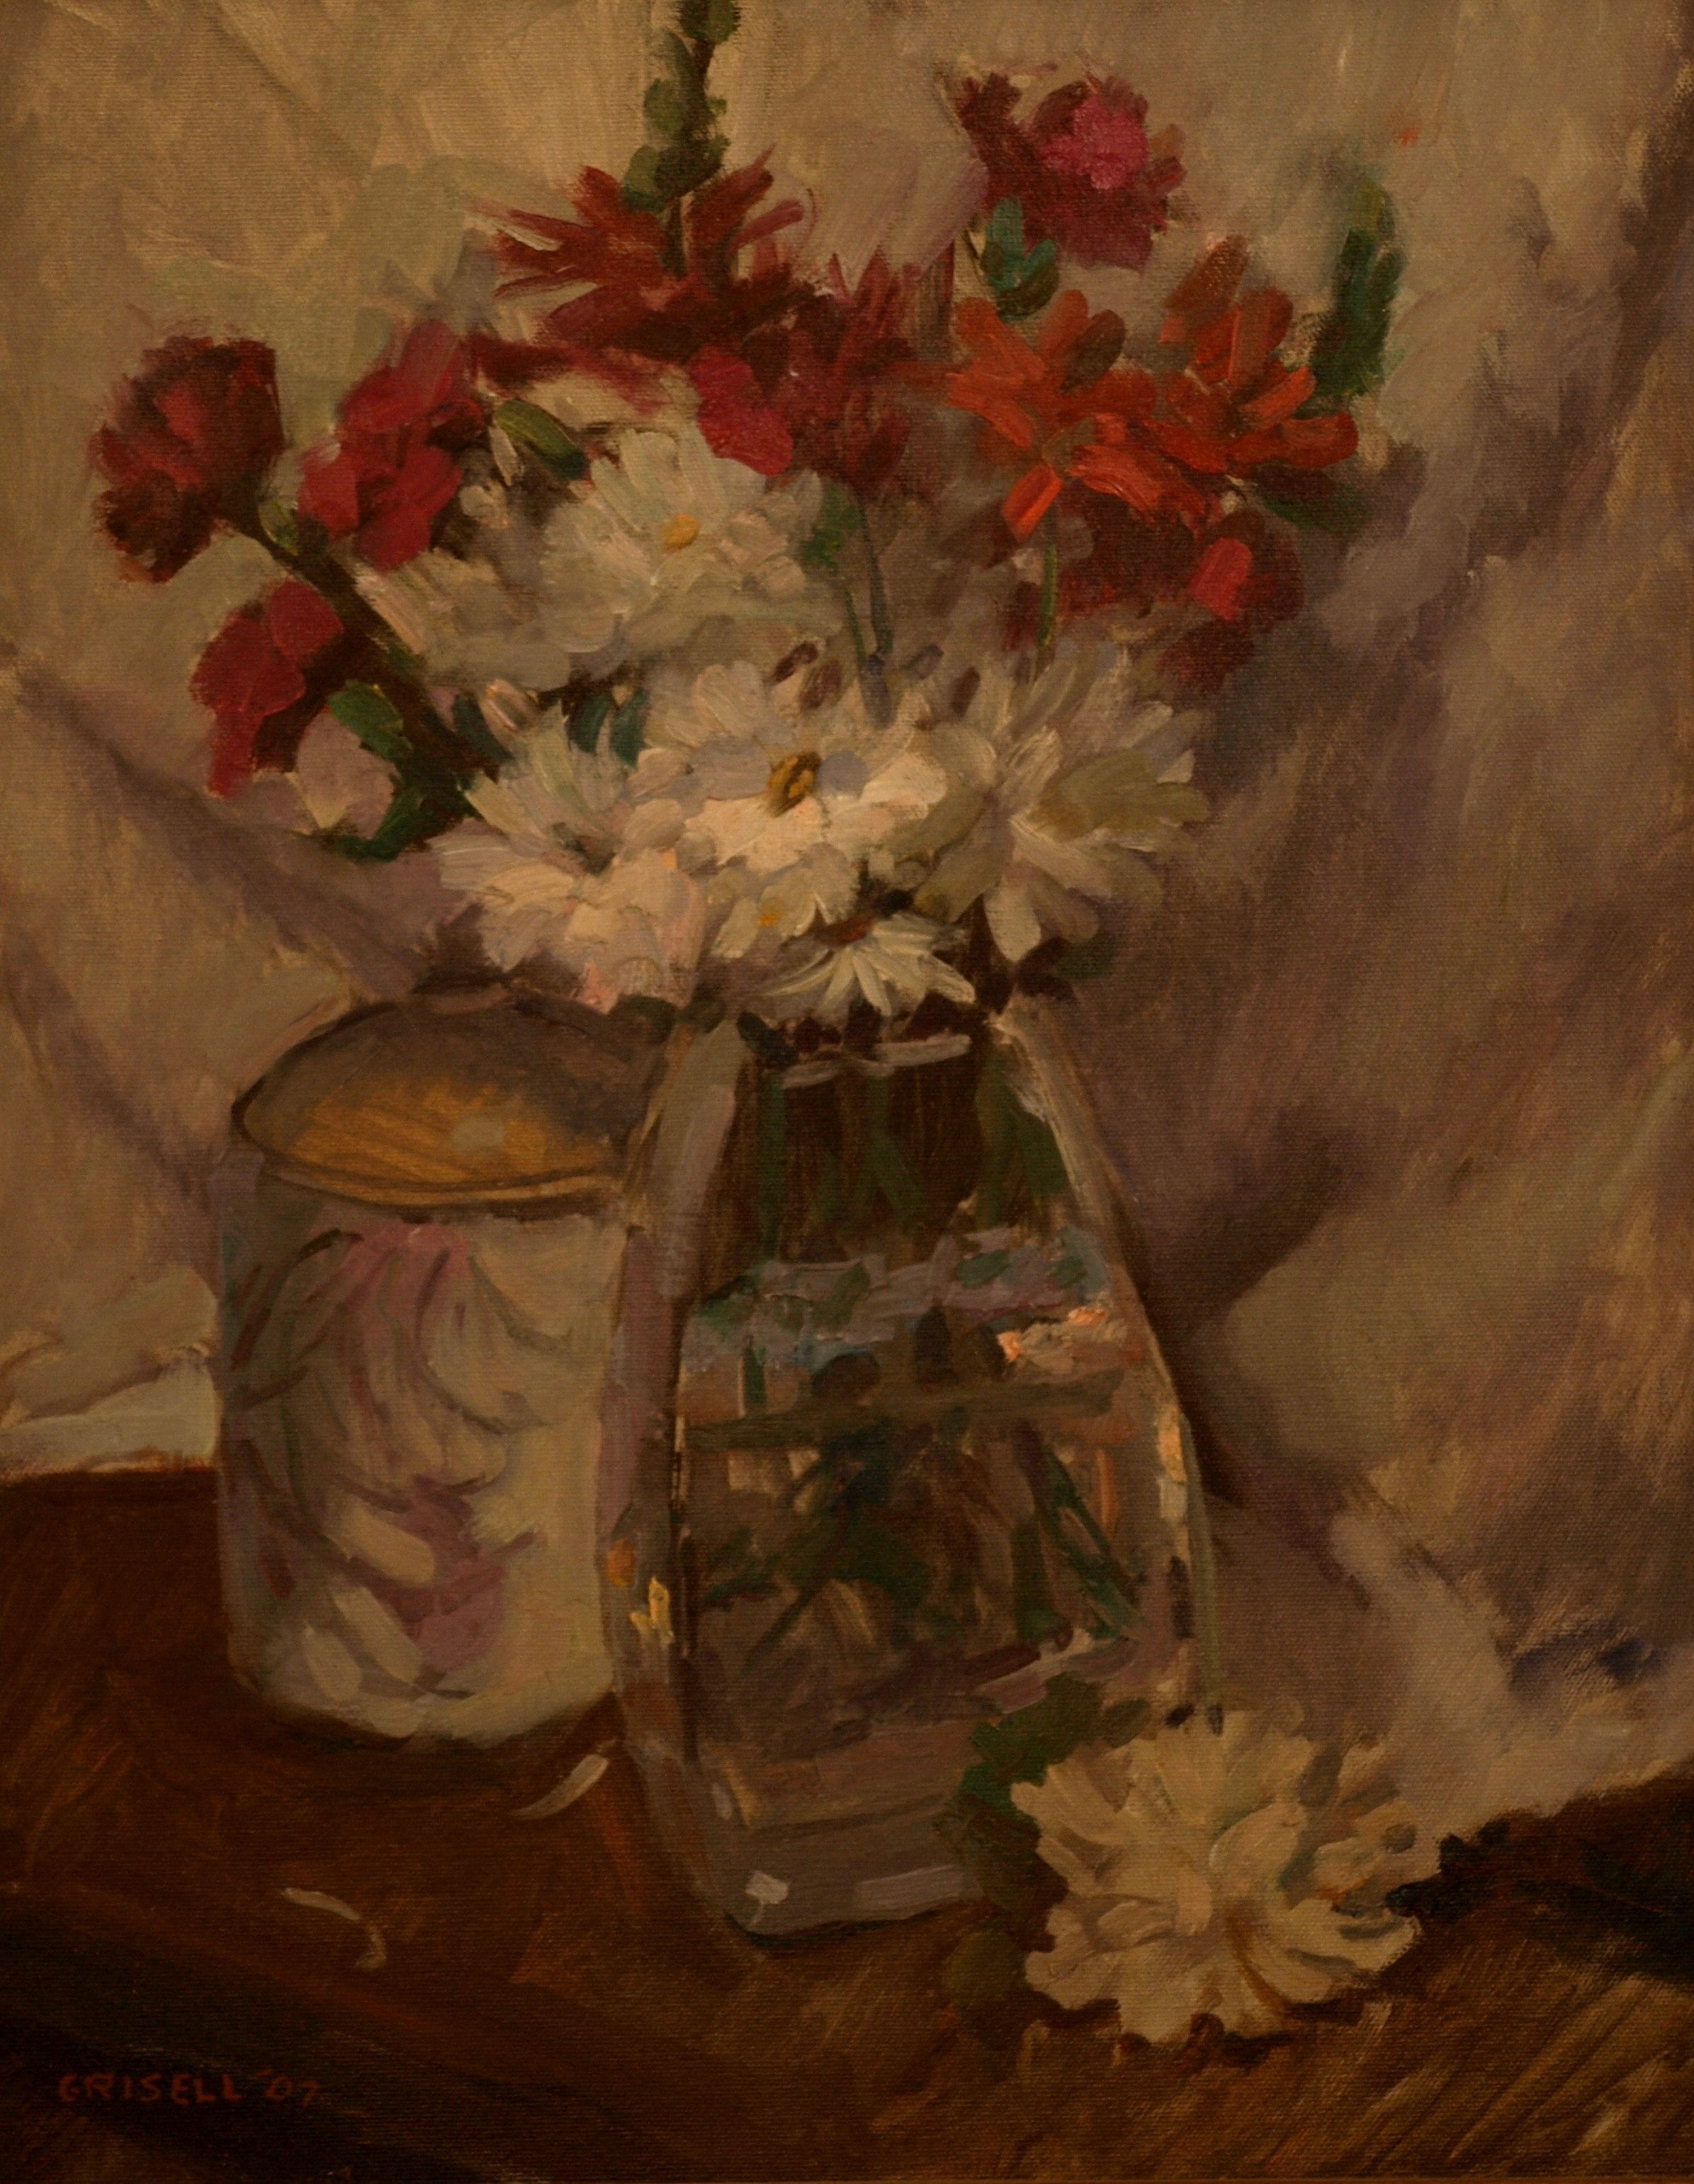 Study in Red and White, Oil on Canvas, 20 x 16 Inches, by Susan Grisell, $450